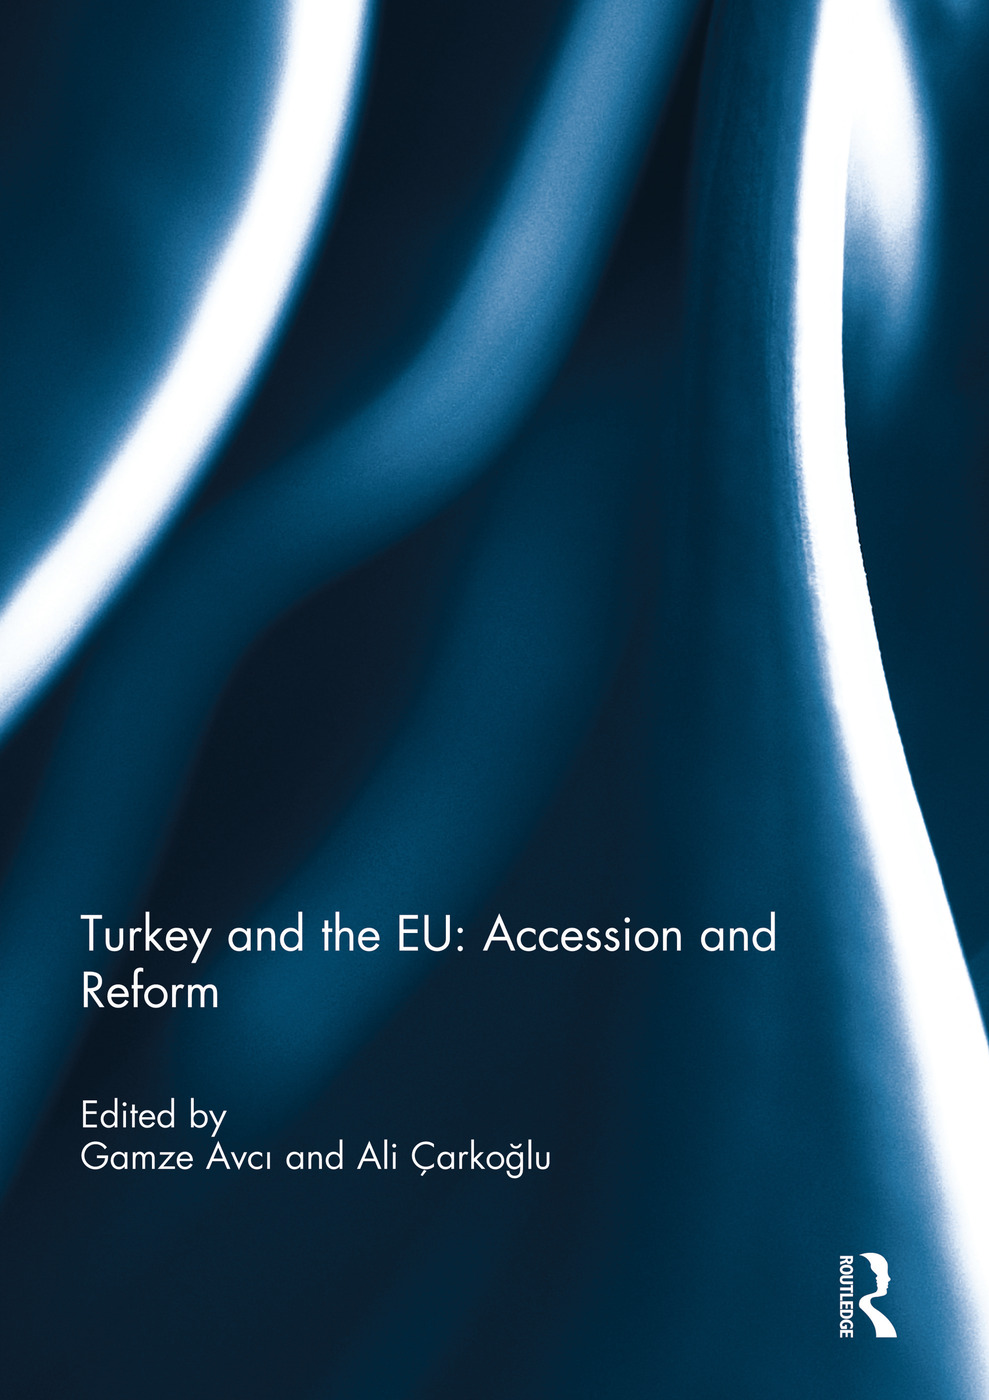 Turkey and the EU: Accession and Reform book cover